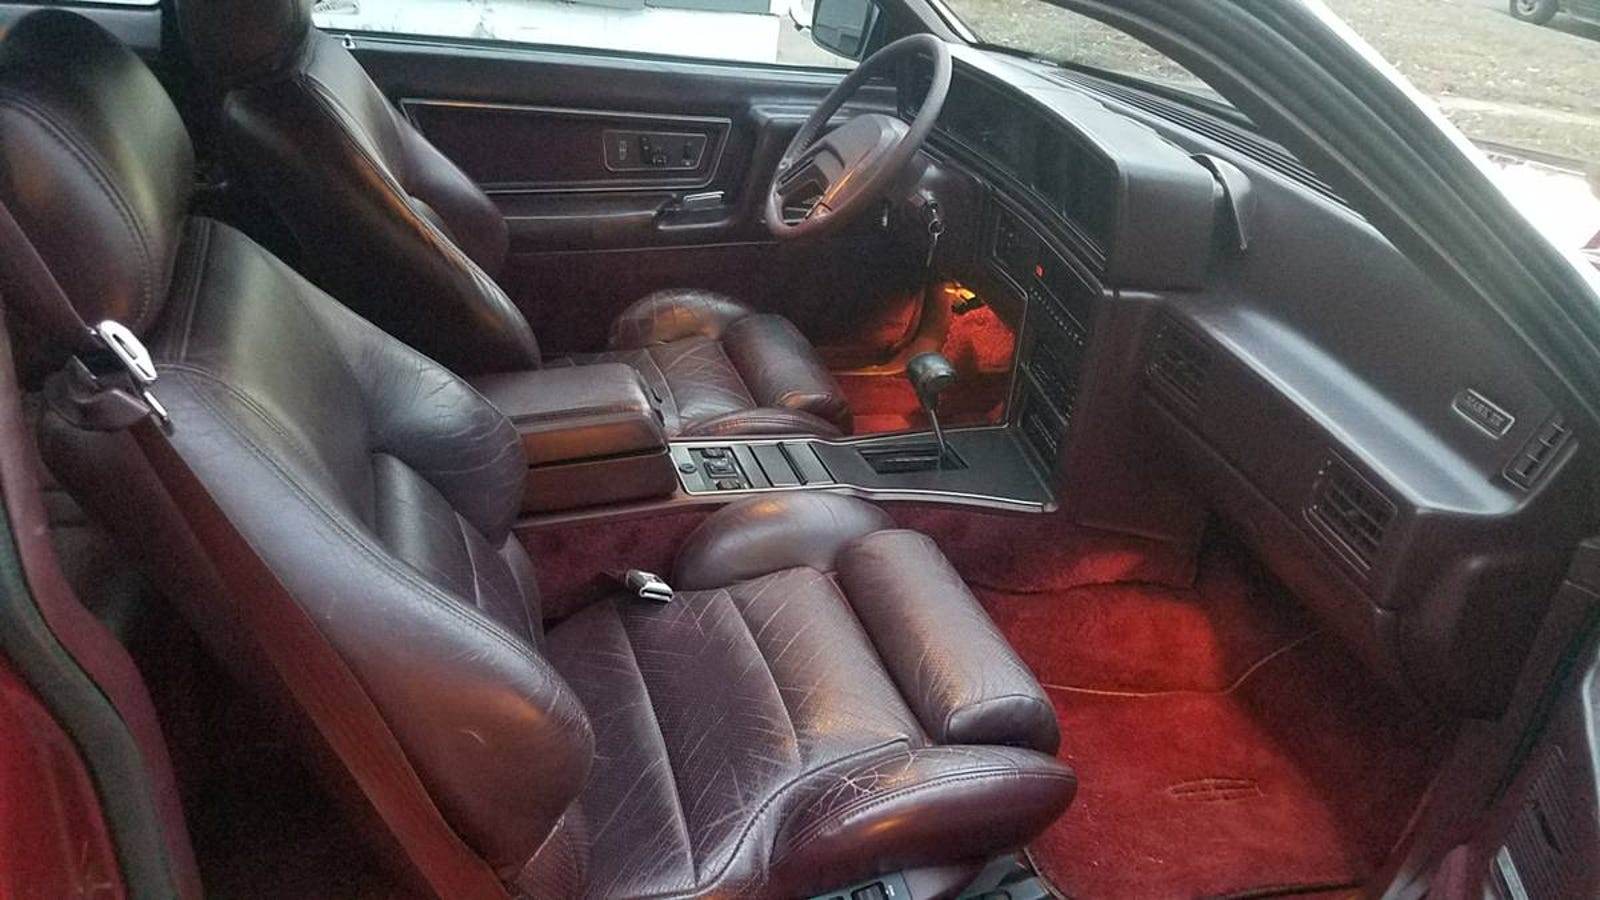 Illustration for article titled For $1,995, Could You Fall For This Luxurious 1988 Lincoln Mk VII LSC?em/em